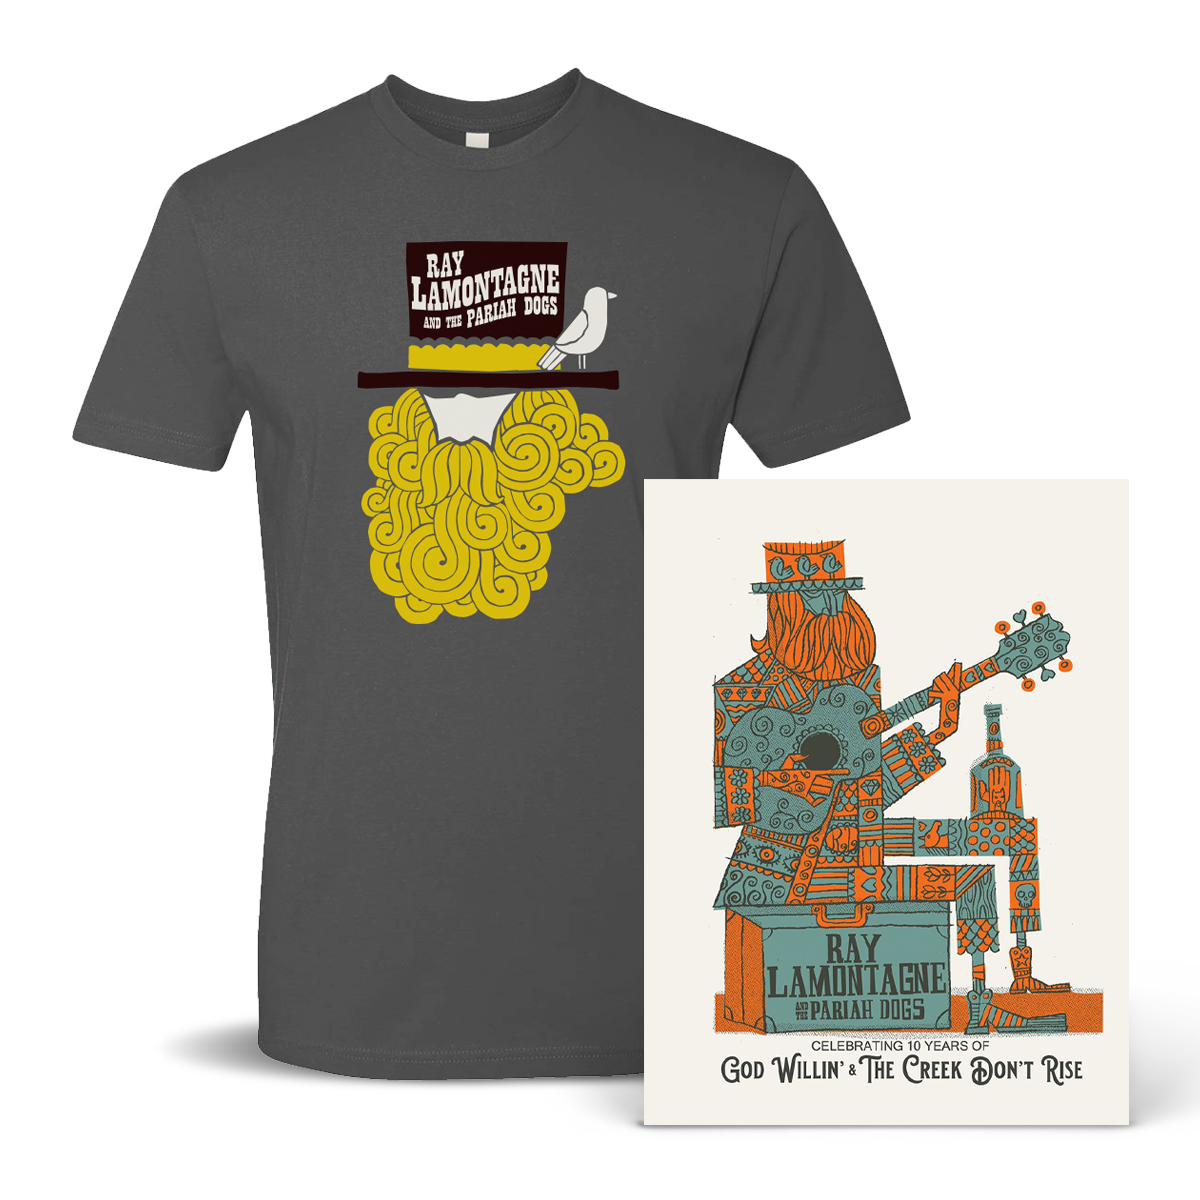 Ray LaMontagne and the Pariah Dogs T-Shirt + Poster